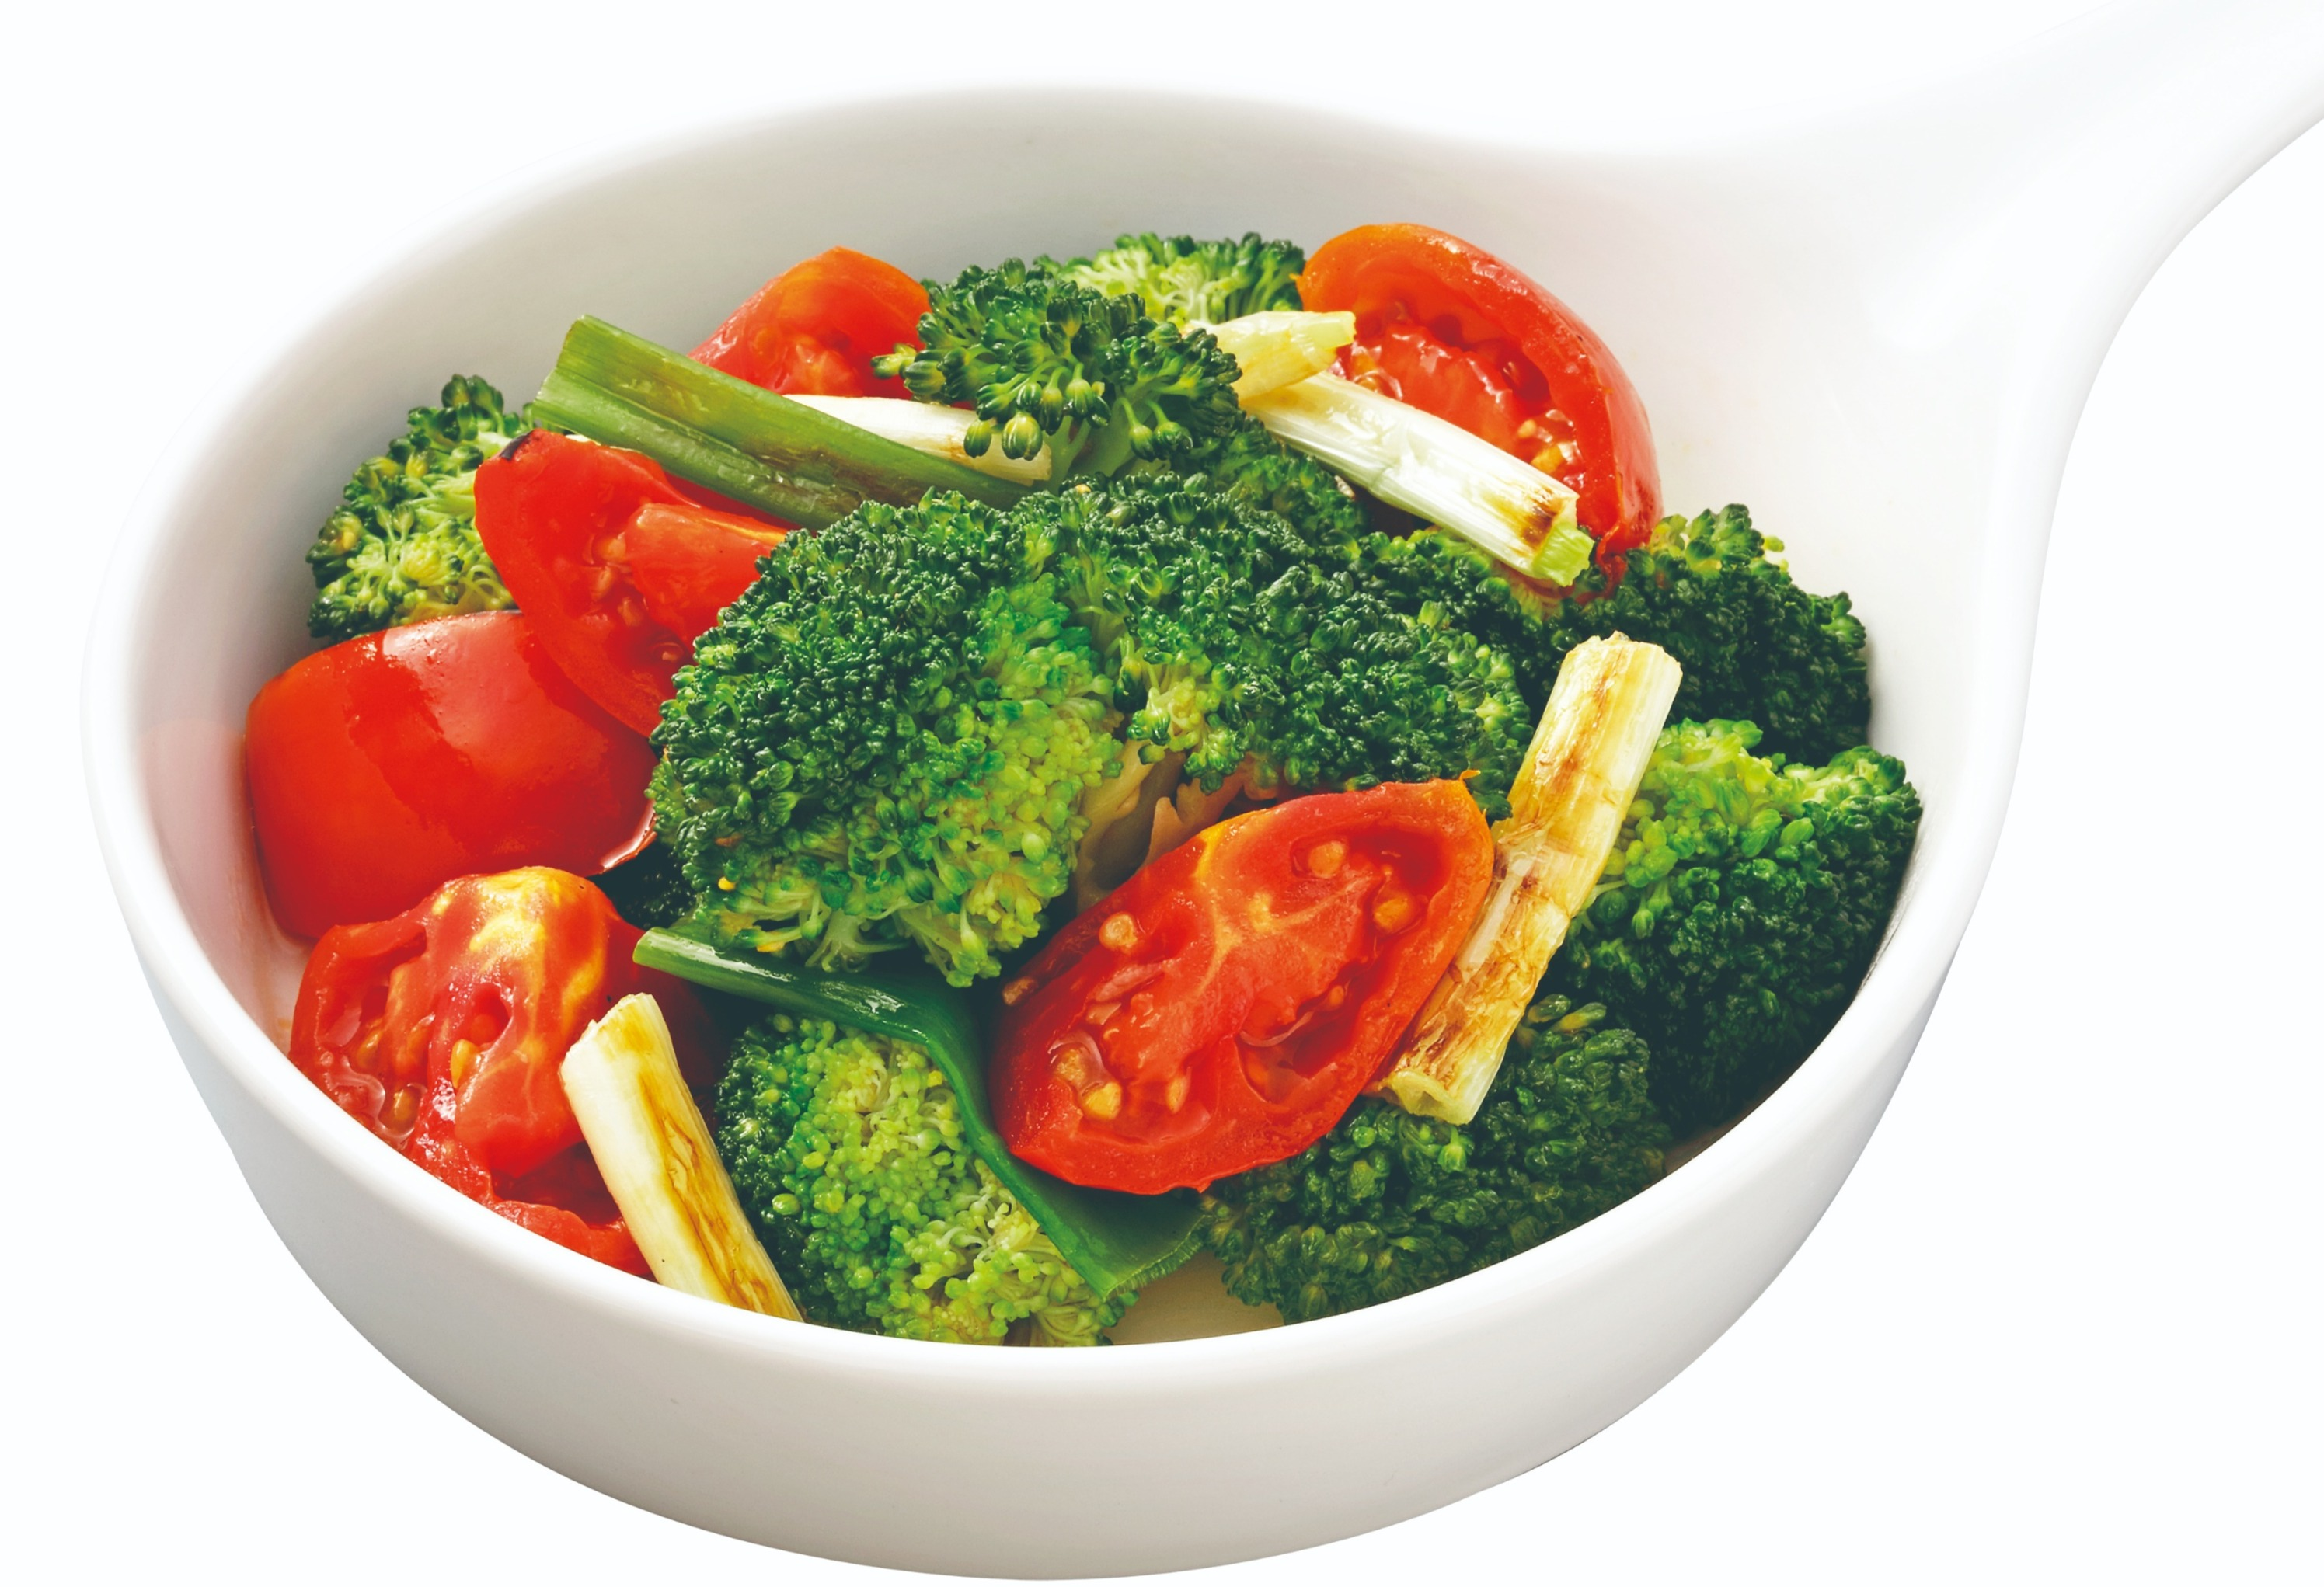 Stir-fried Broccoli with Tomato